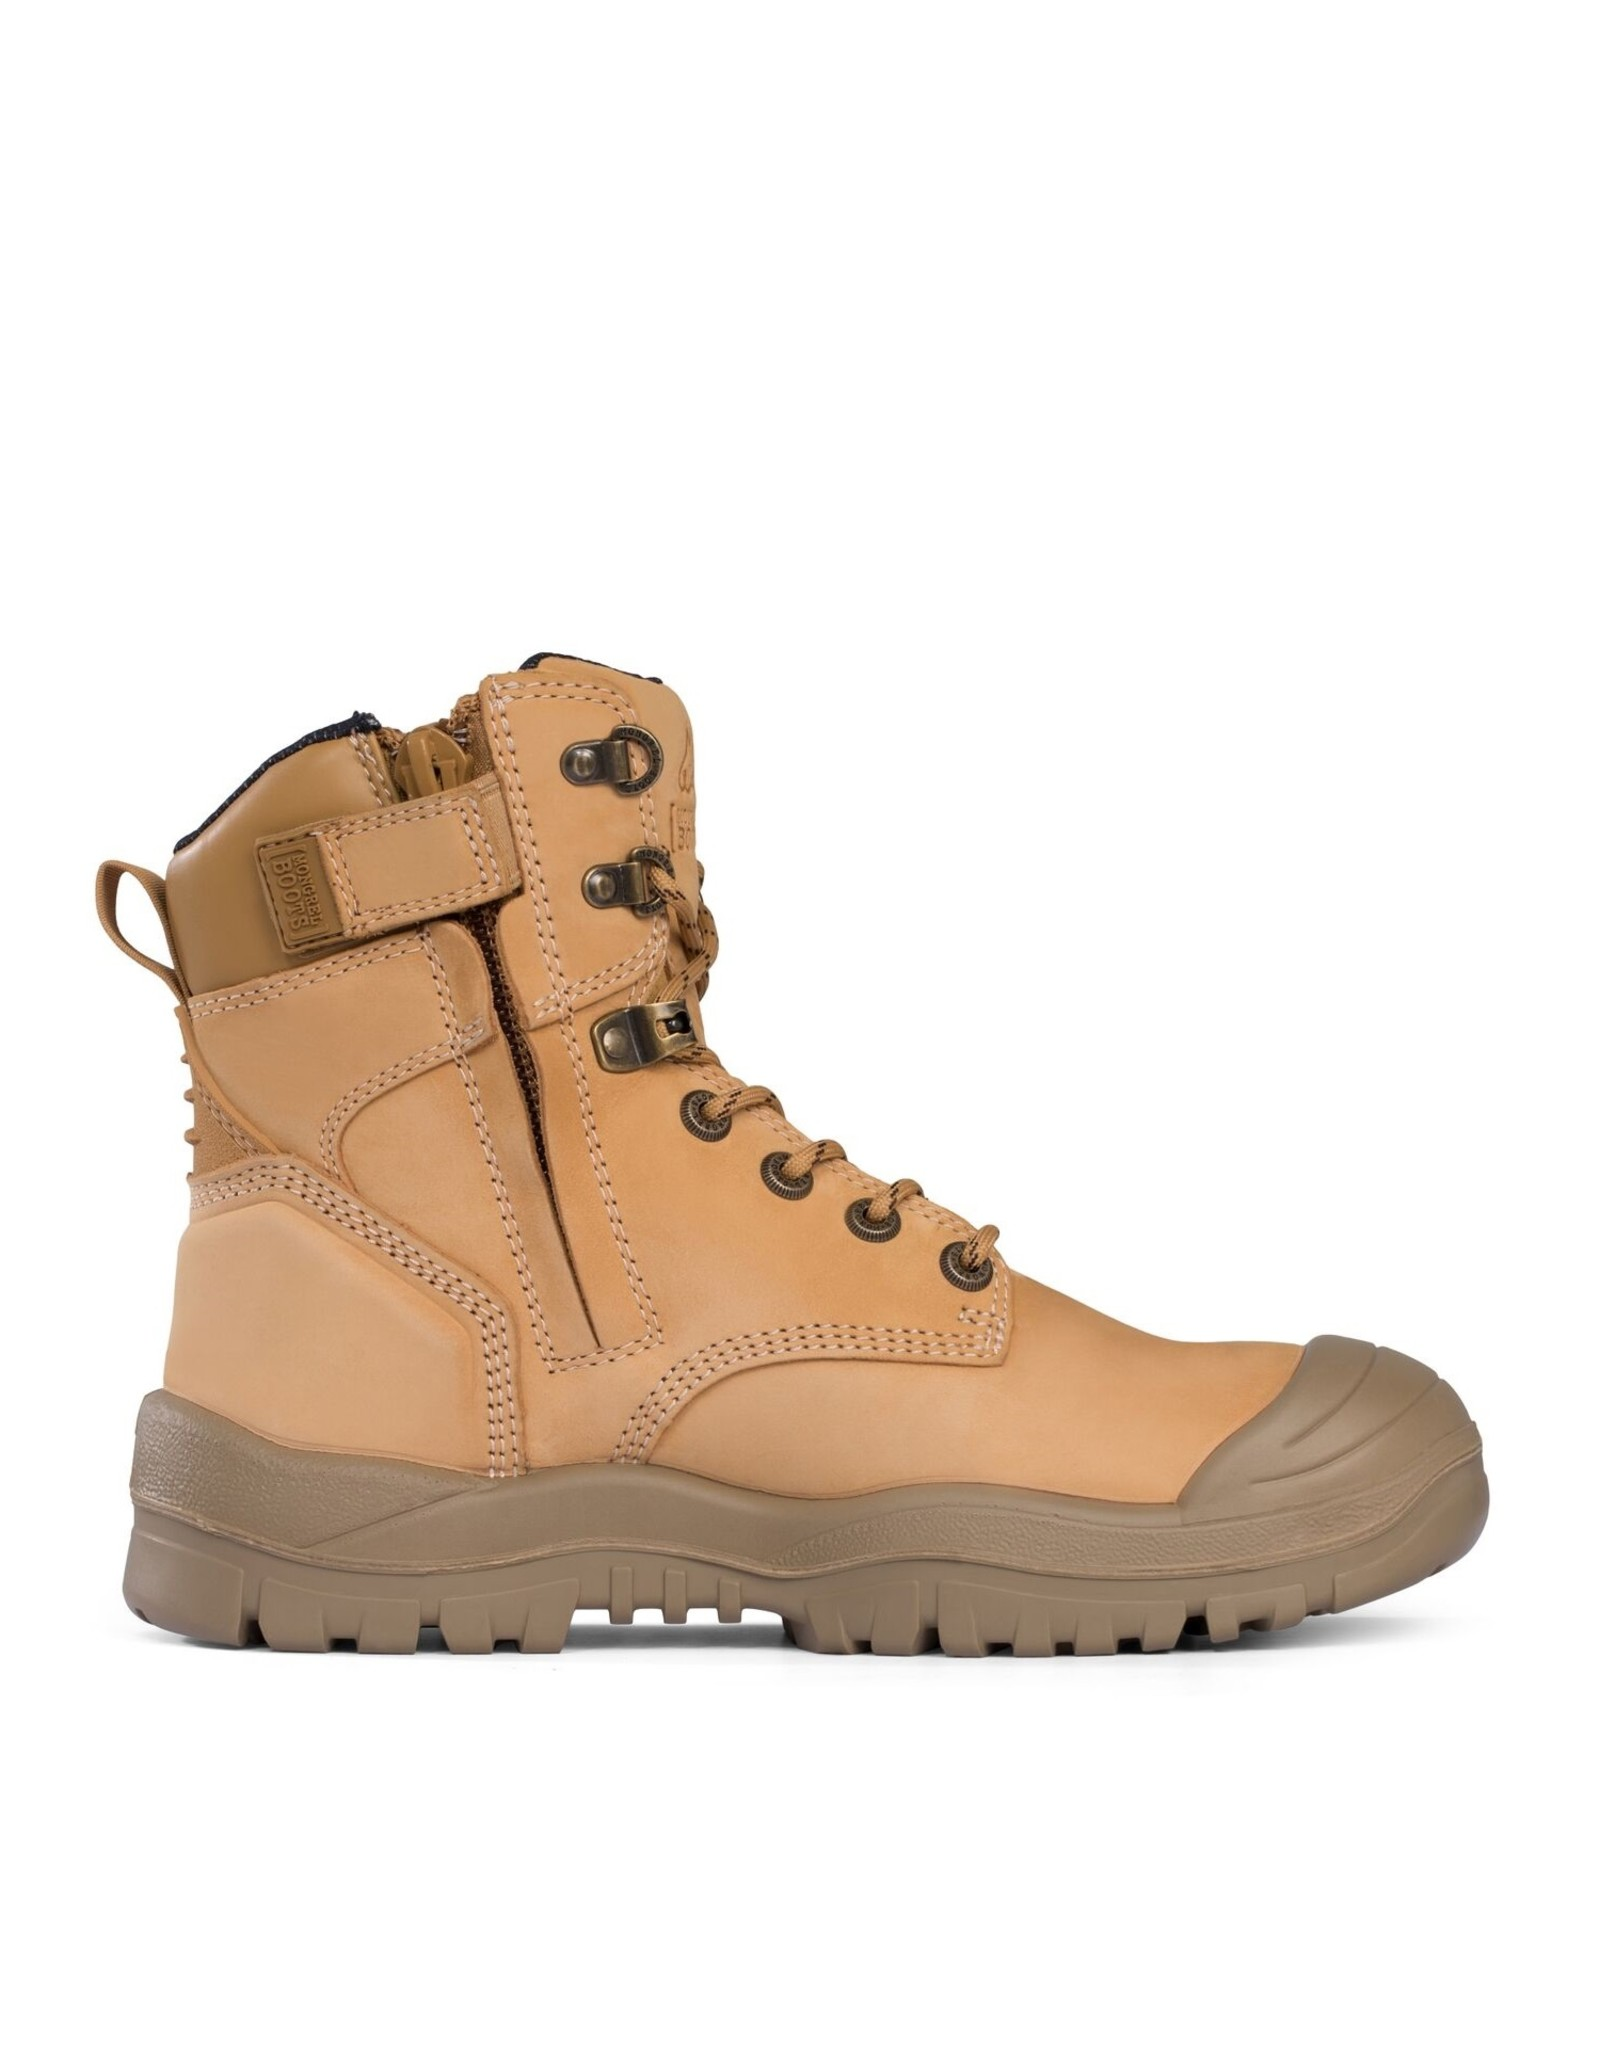 Mongrel Mongrel 561050 'R' Series Wheat High Ankle Zip Sider Safety Boot With Scuff Cap